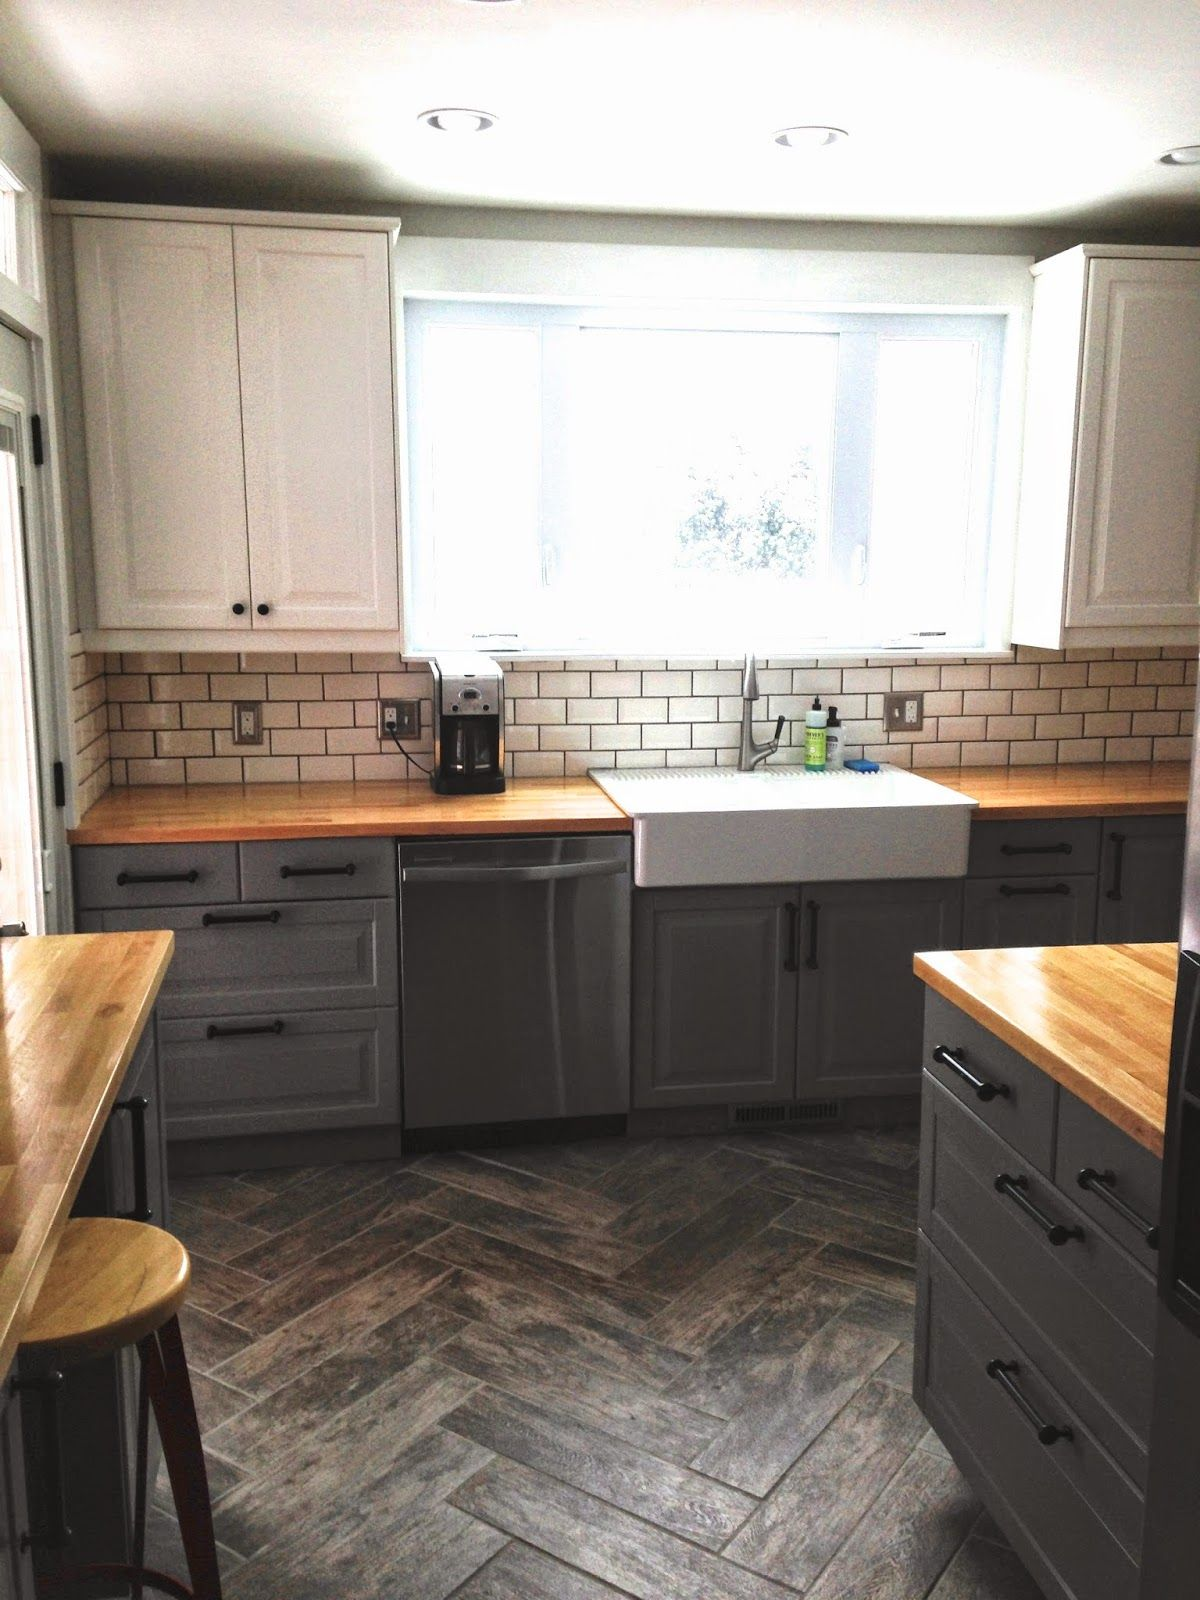 Our ikea kitchen renovation akurum base cabinets in grey and